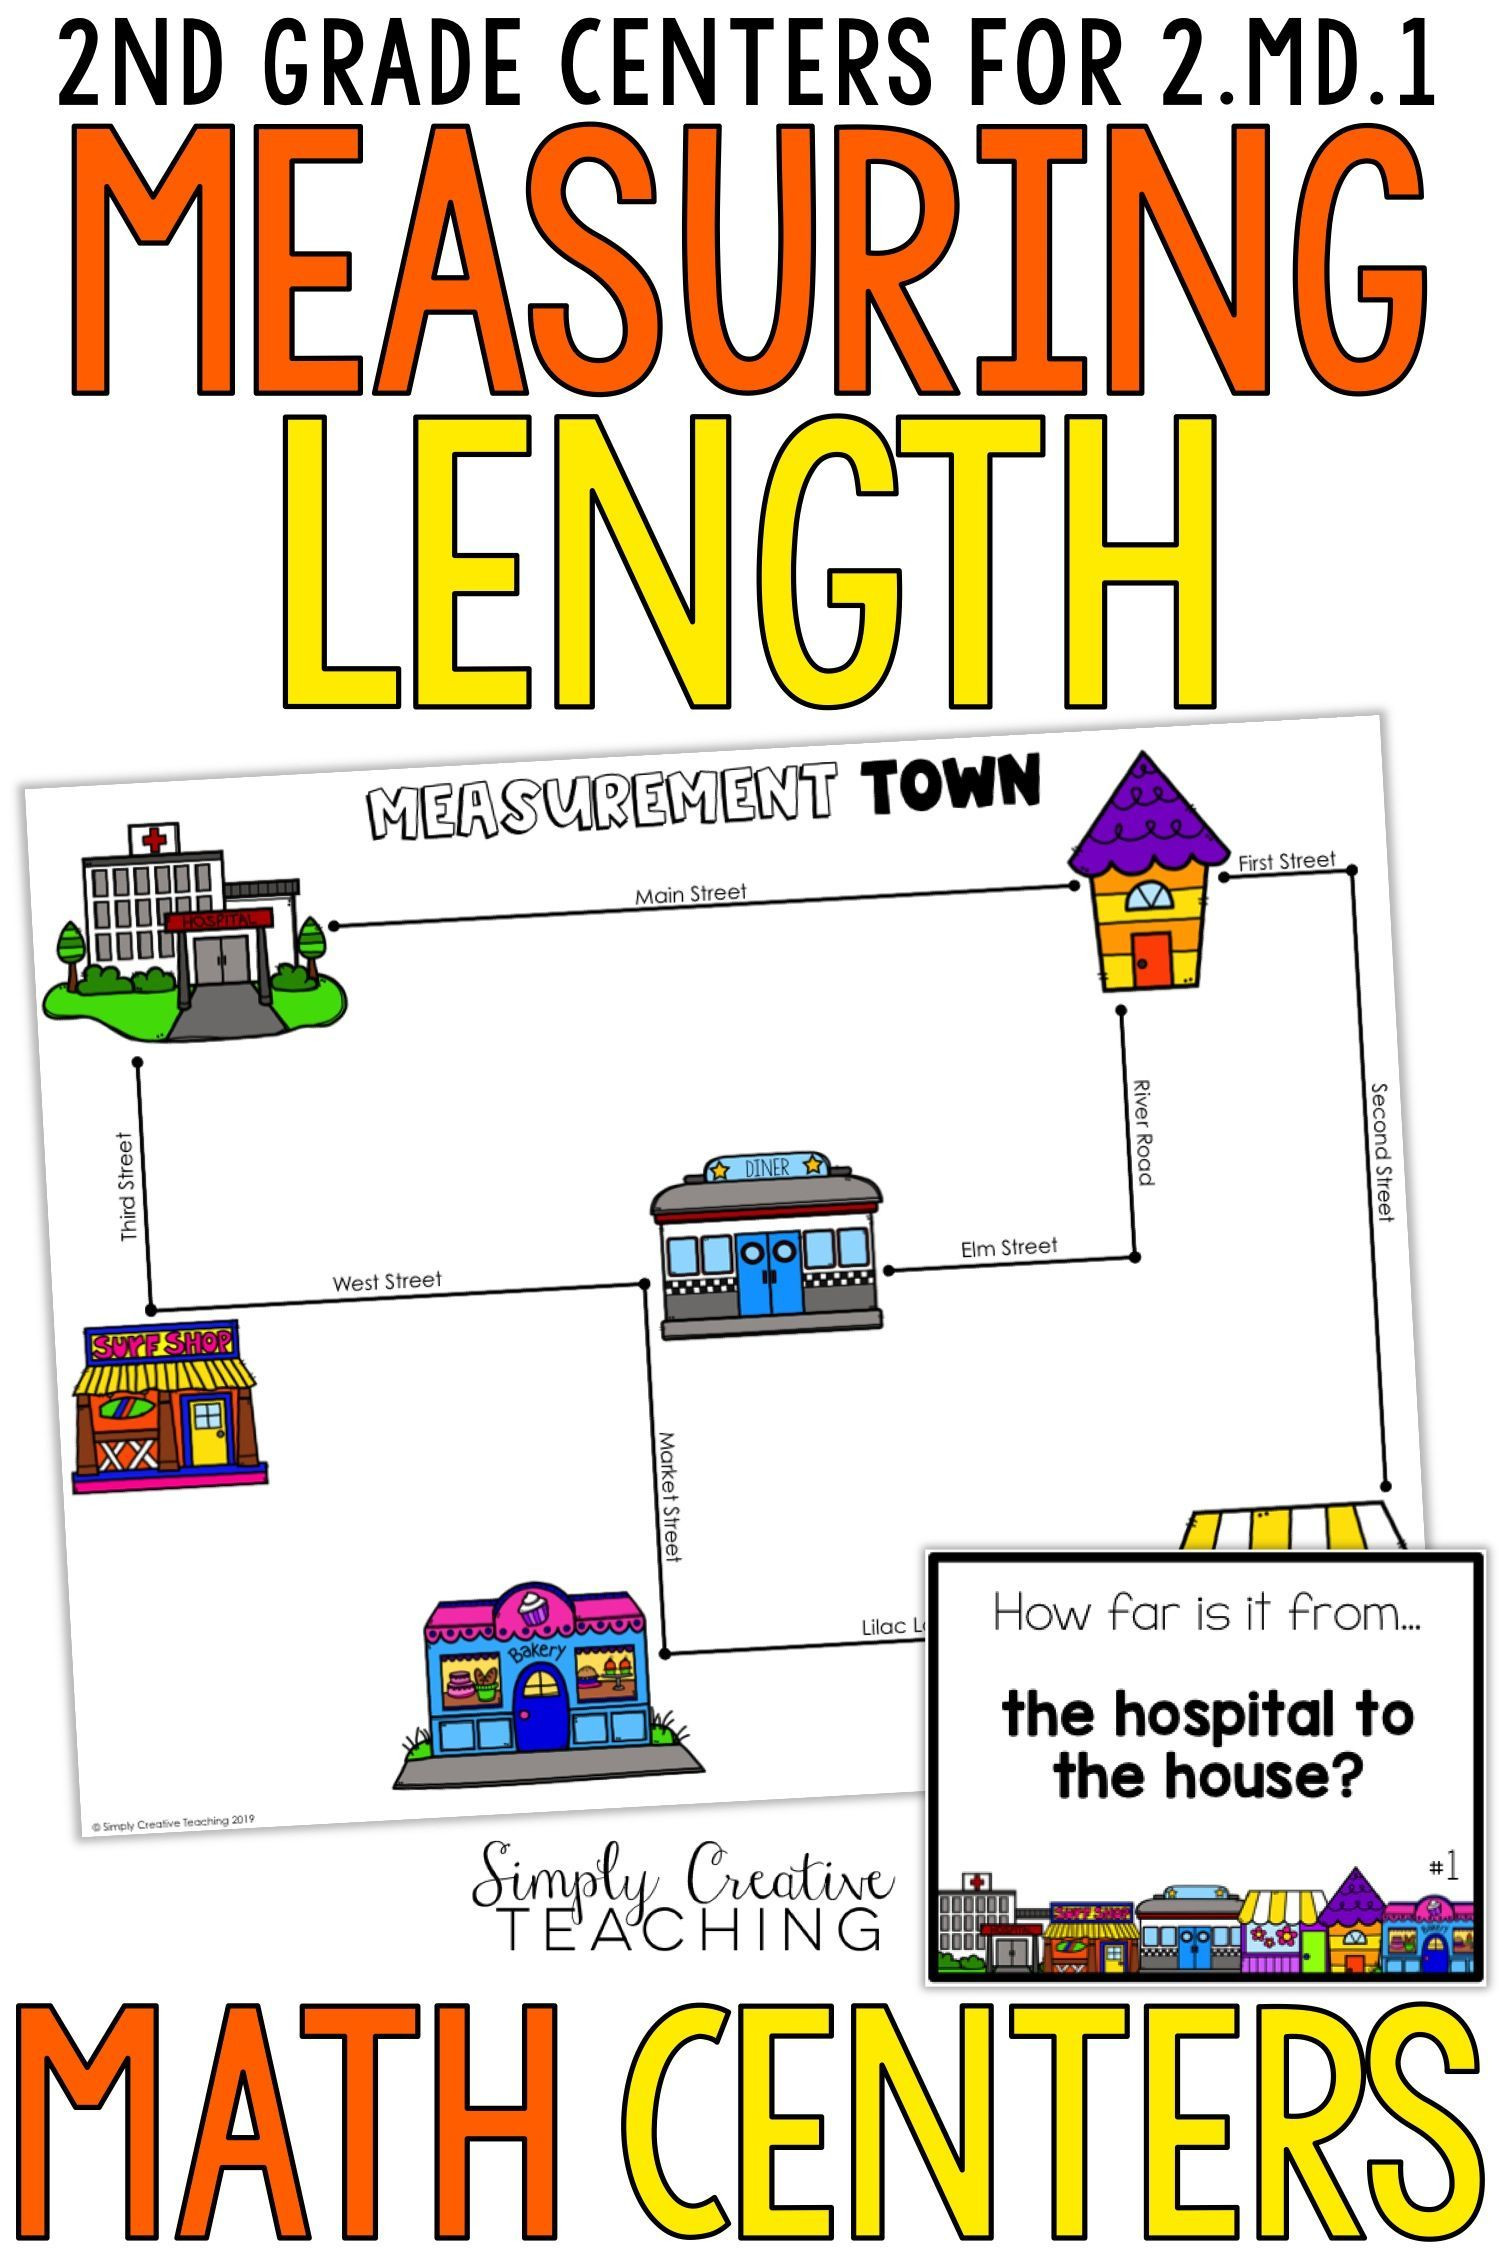 Measuring Worksheets 2nd Grade 2nd Grade Measurement Centers for 2 Md 1